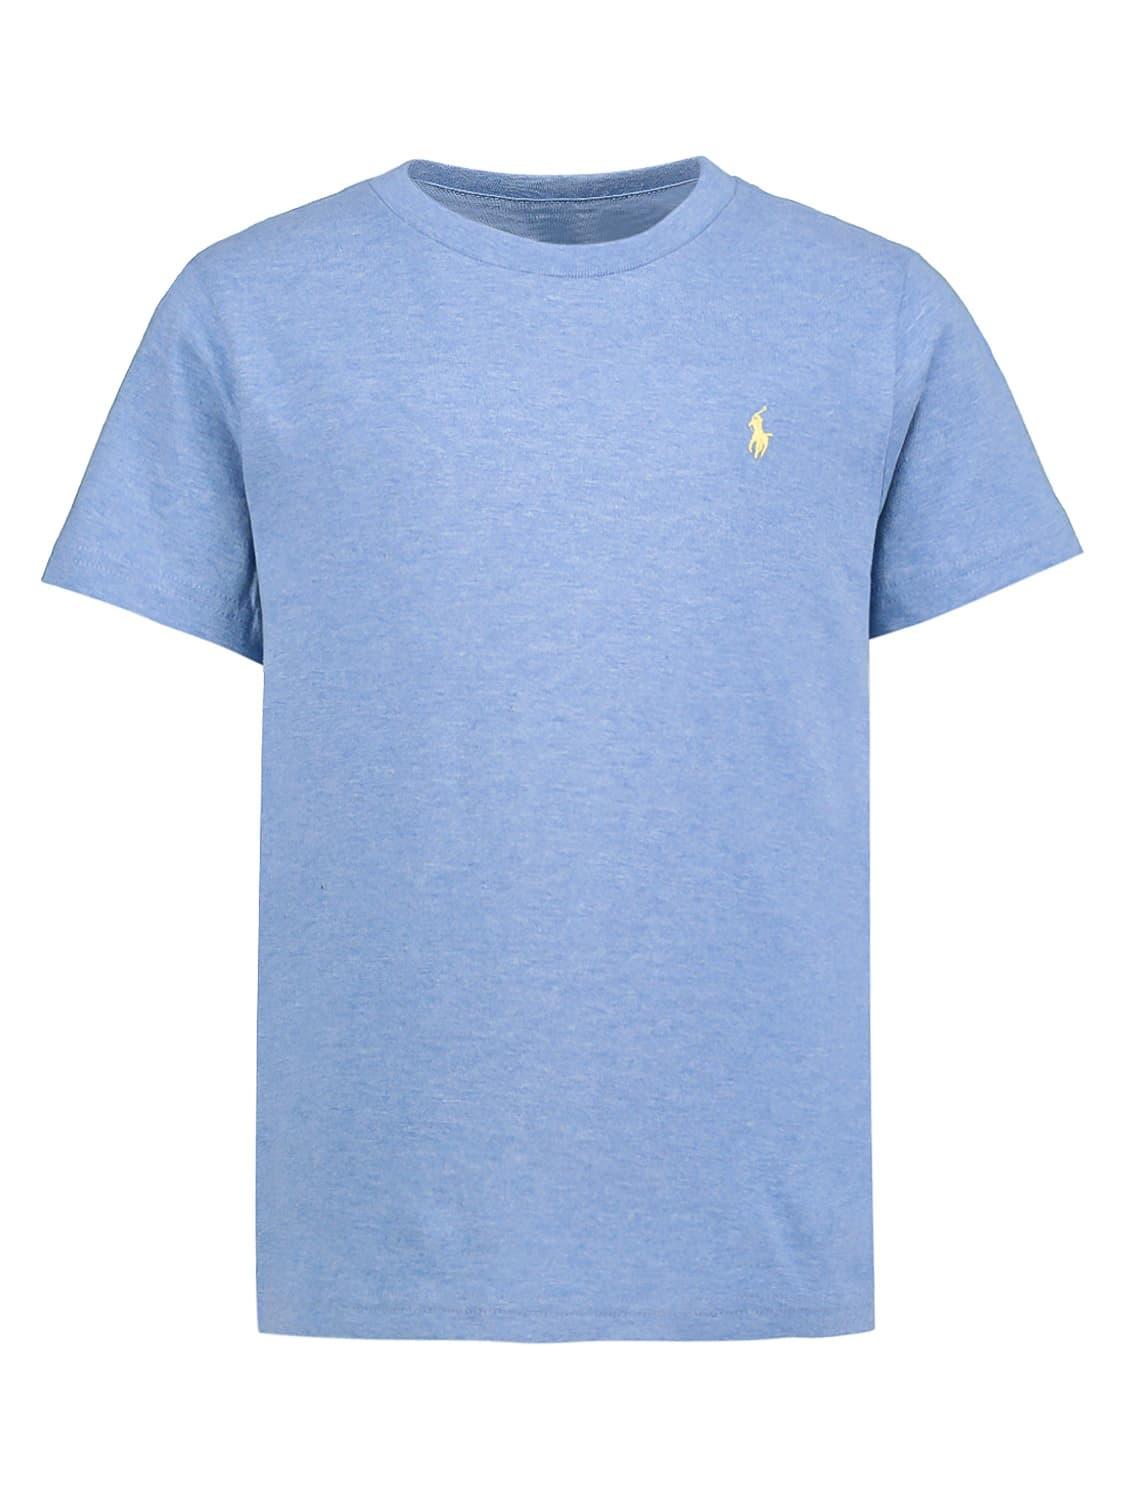 POLO RALPH LAUREN KIDS T-SHIRT FOR BOYS